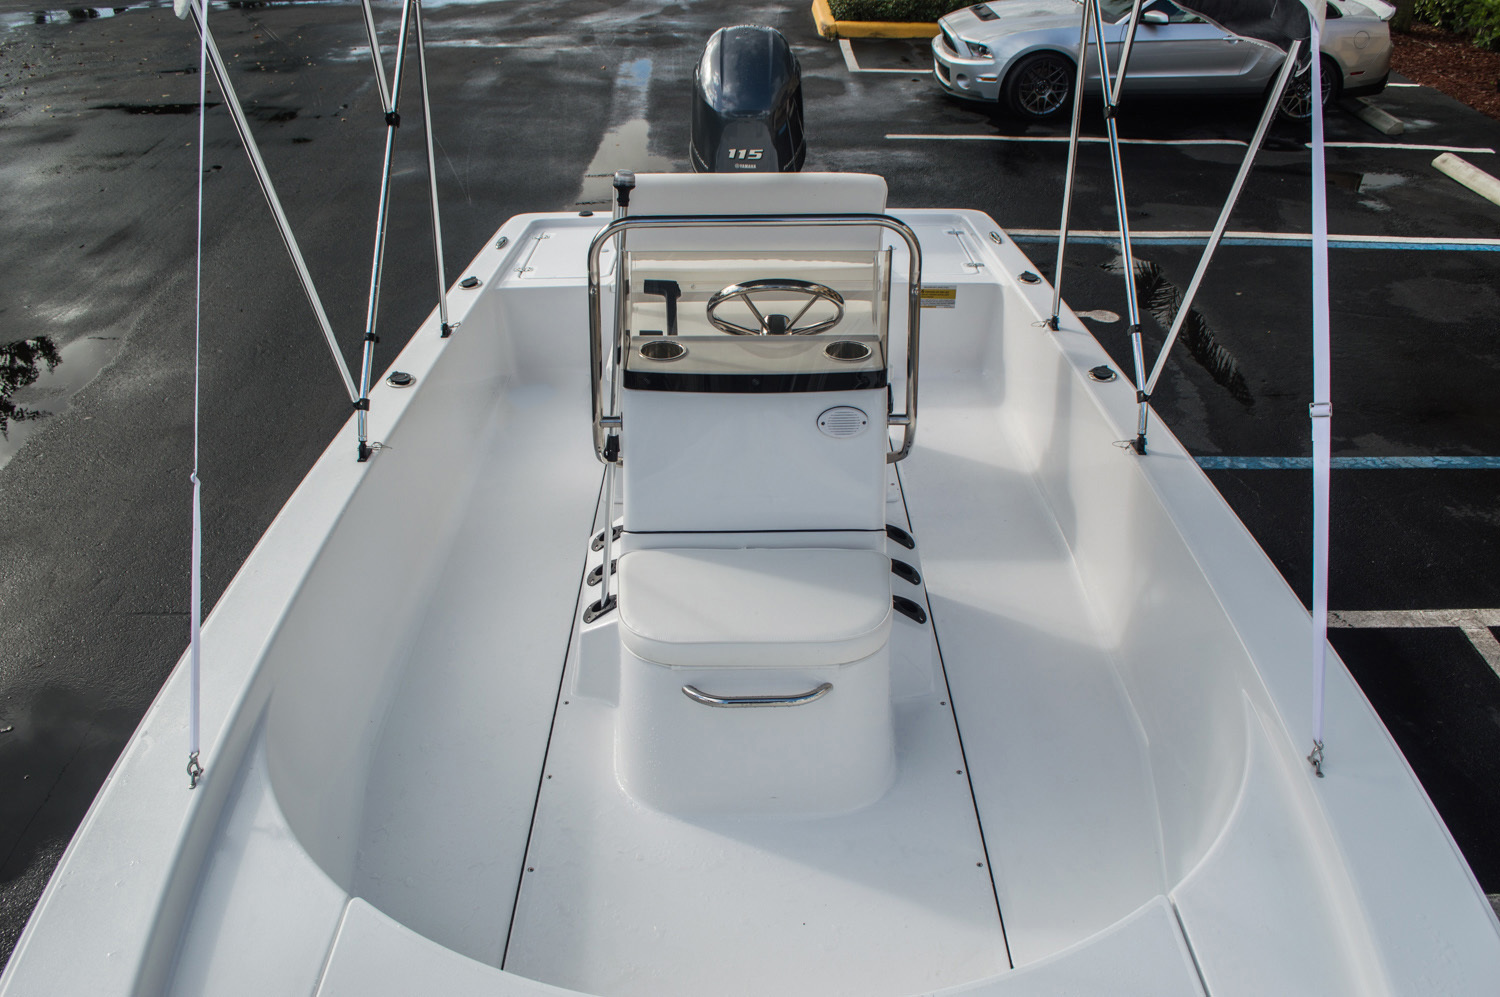 Thumbnail 14 for New 2016 Sportsman 20 Island Bay boat for sale in West Palm Beach, FL